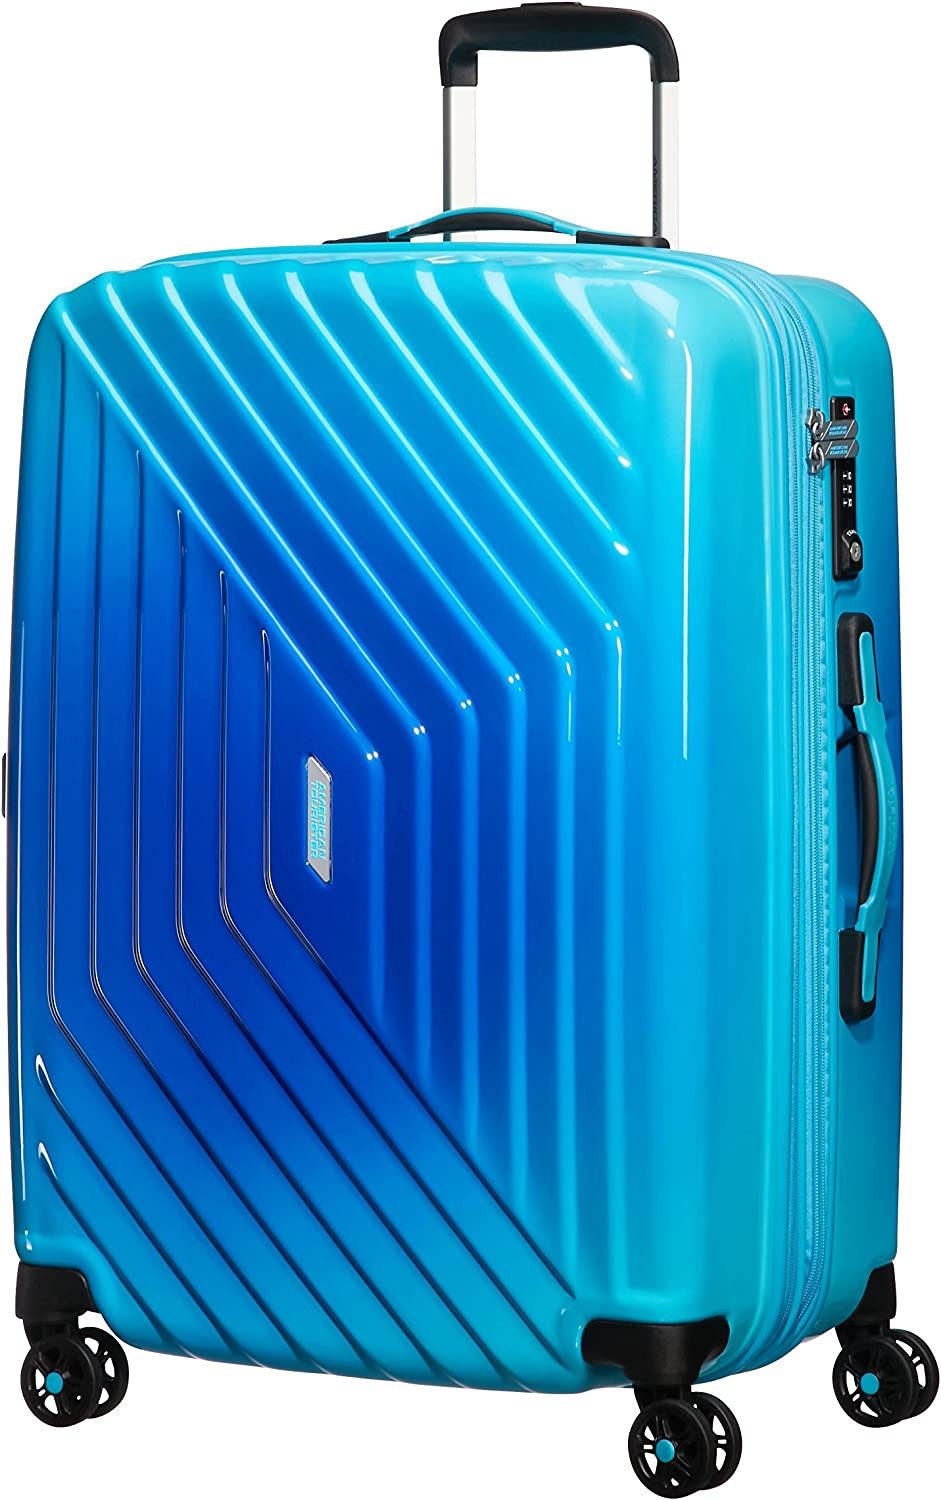 American Tourister Air Force 1 - Maleta, Azul (Gradient Blue), M (66cm-69L)